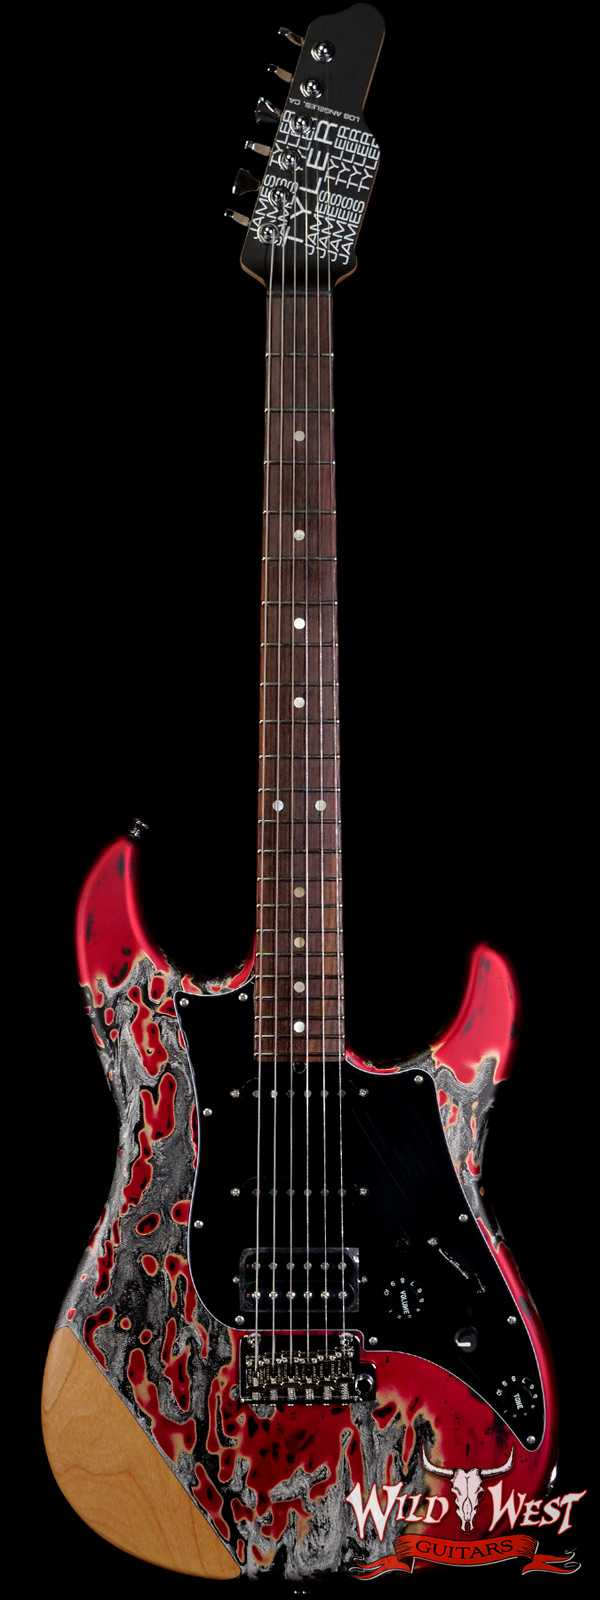 James Tyler USA Studio Elite Burning Water 2K with Arm Contour Rosewood Fingerboard Midboost Preamp